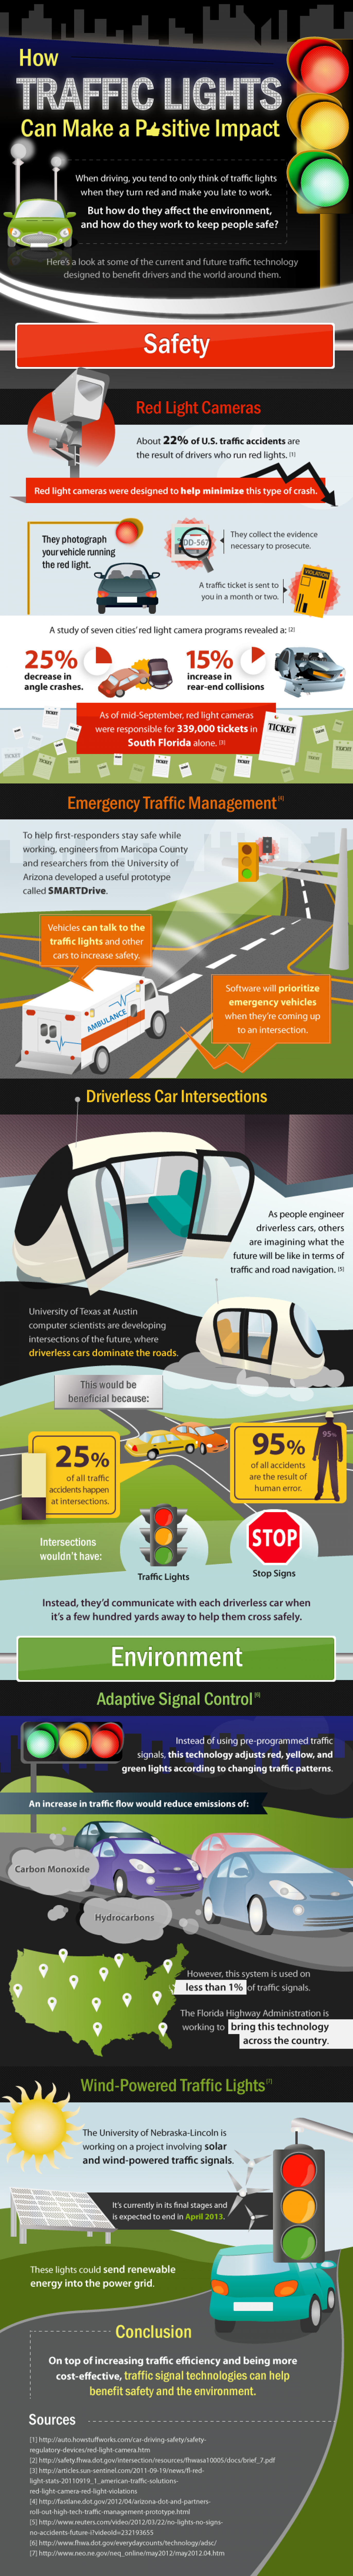 How Traffic Lights Can Make a Positive Impact Infographic